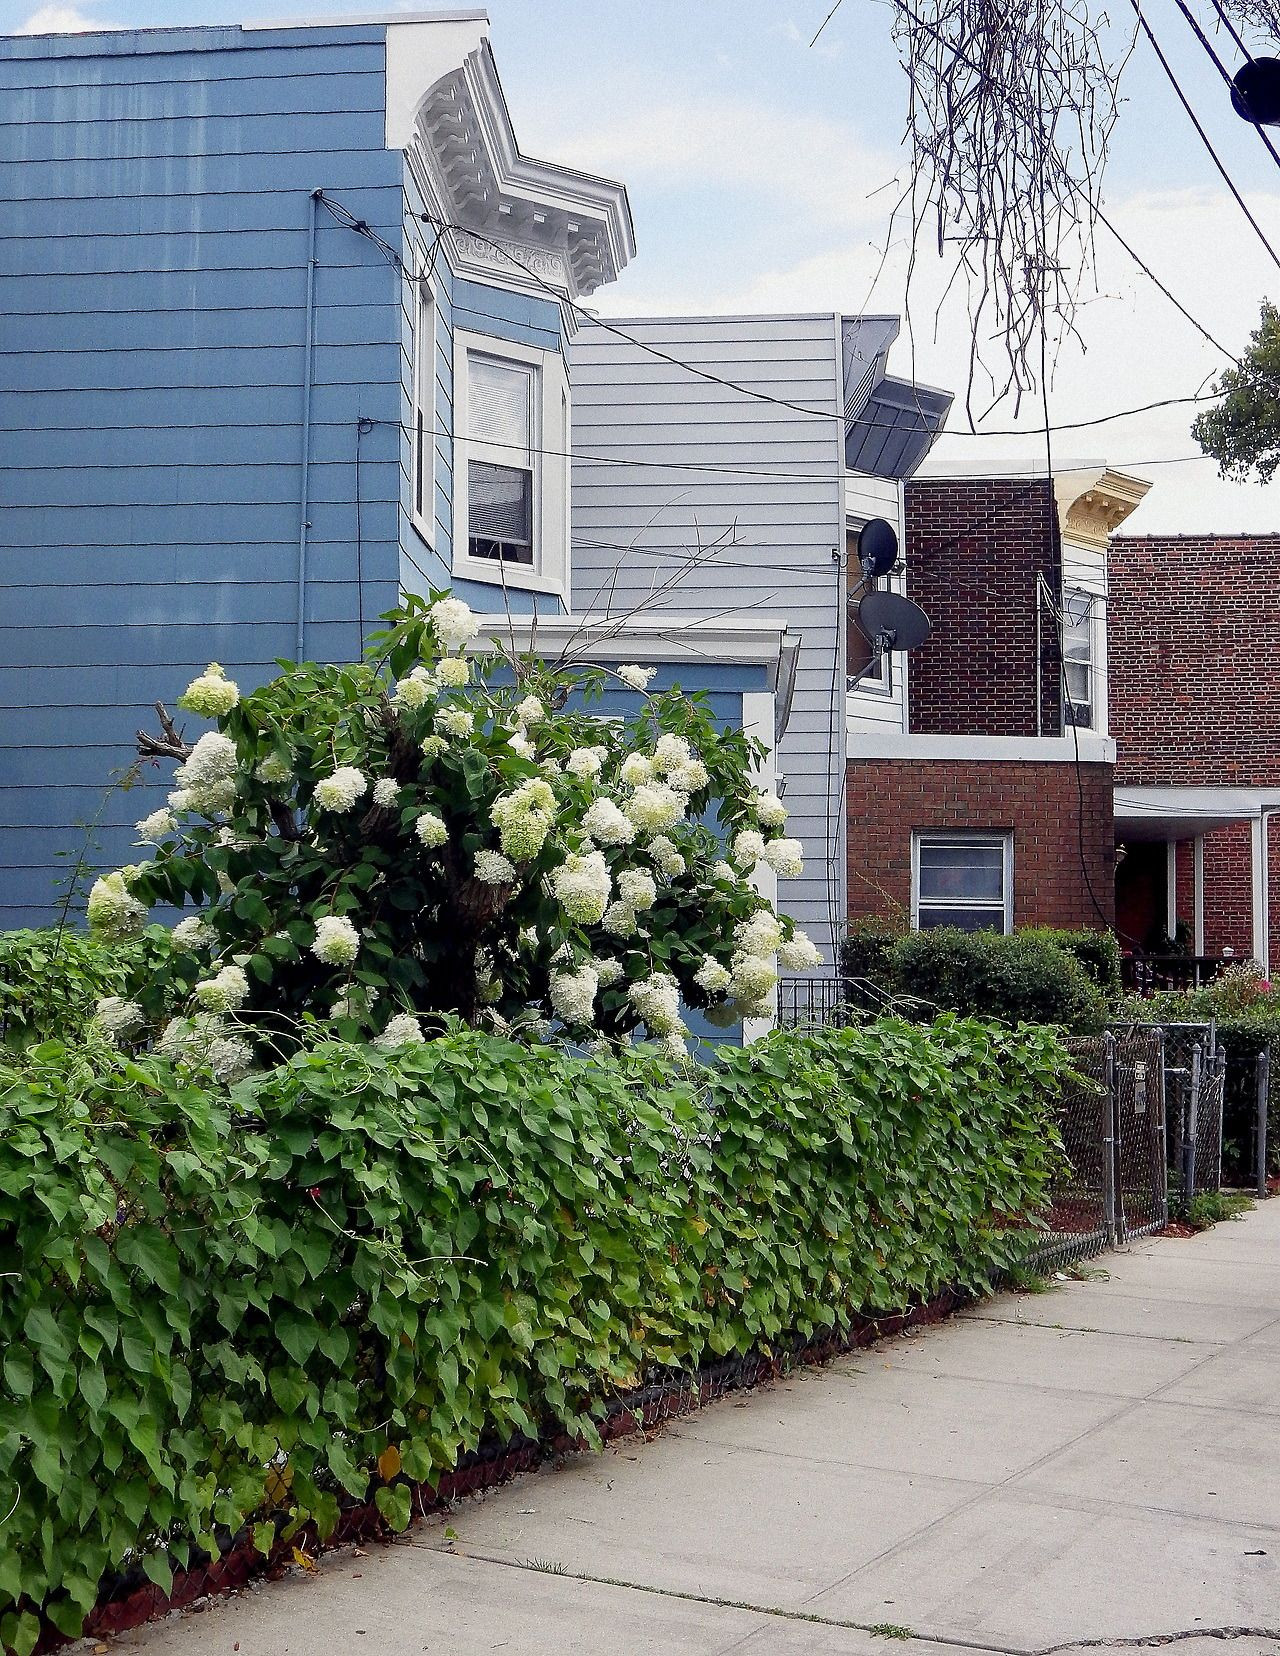 Houses and flowers in Woodlawn Heights the Bronx